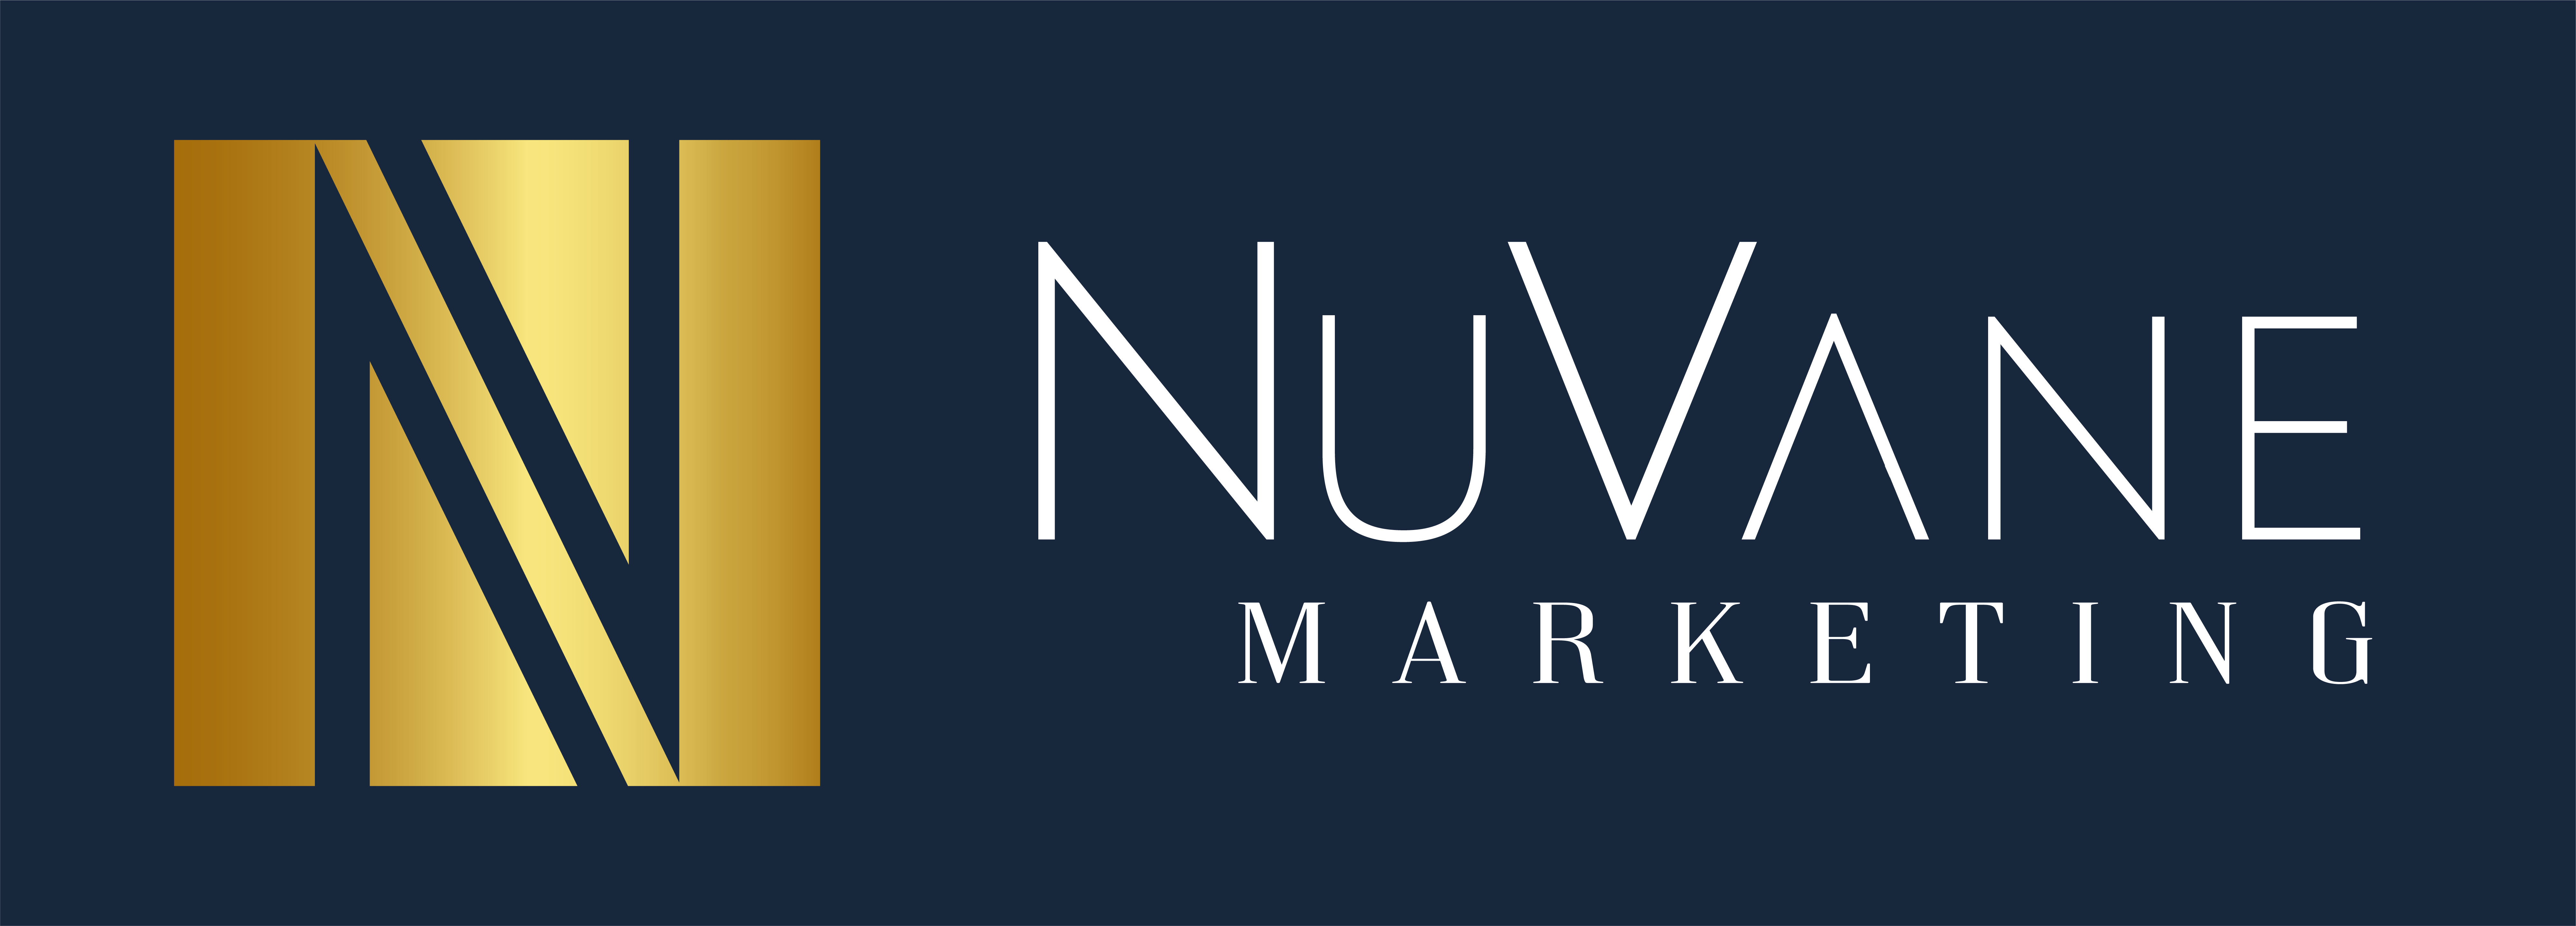 NuVane Marketing Logo